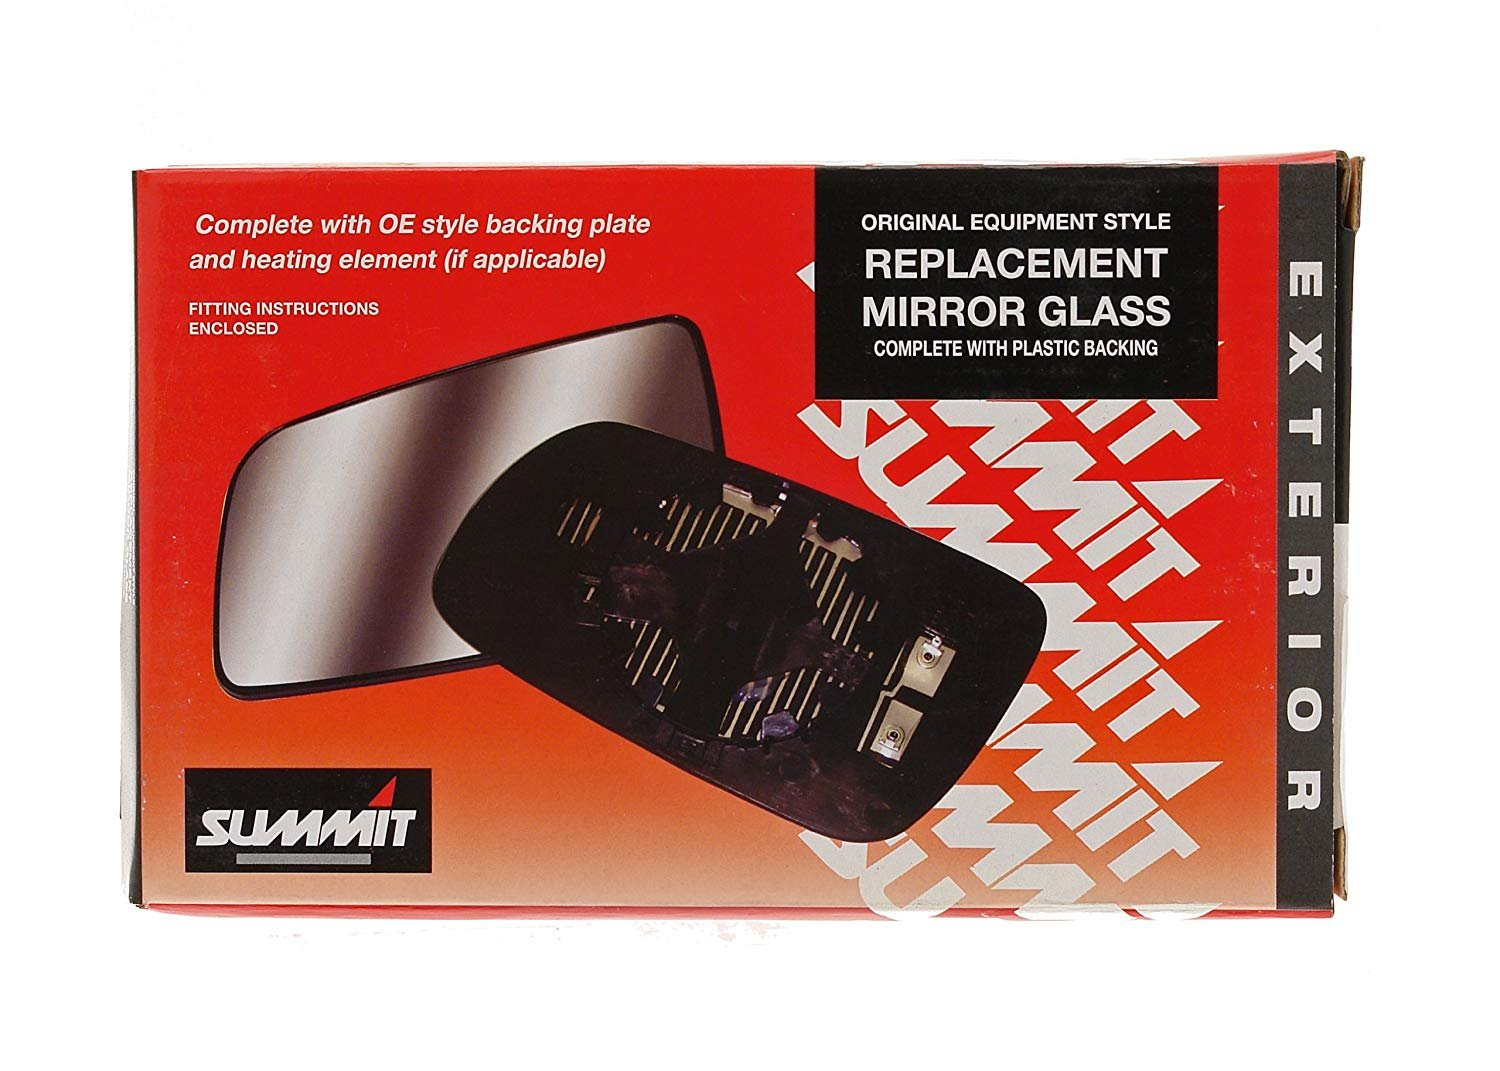 Summit Asrg-832Bh Mirror Glass Standard Replacement